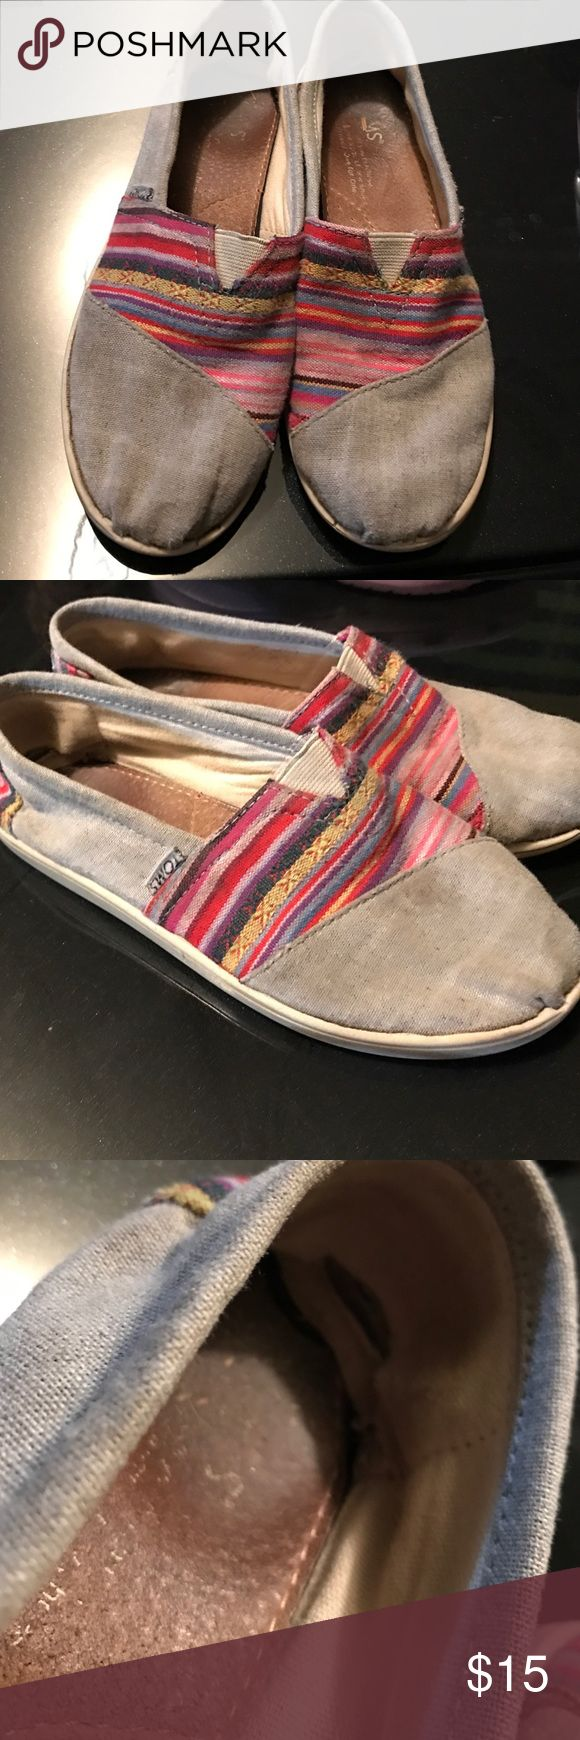 Girls Toms Good condition, some wear but no holes. There is signs of wear on the inside show in pics. TOMS Shoes Sneakers